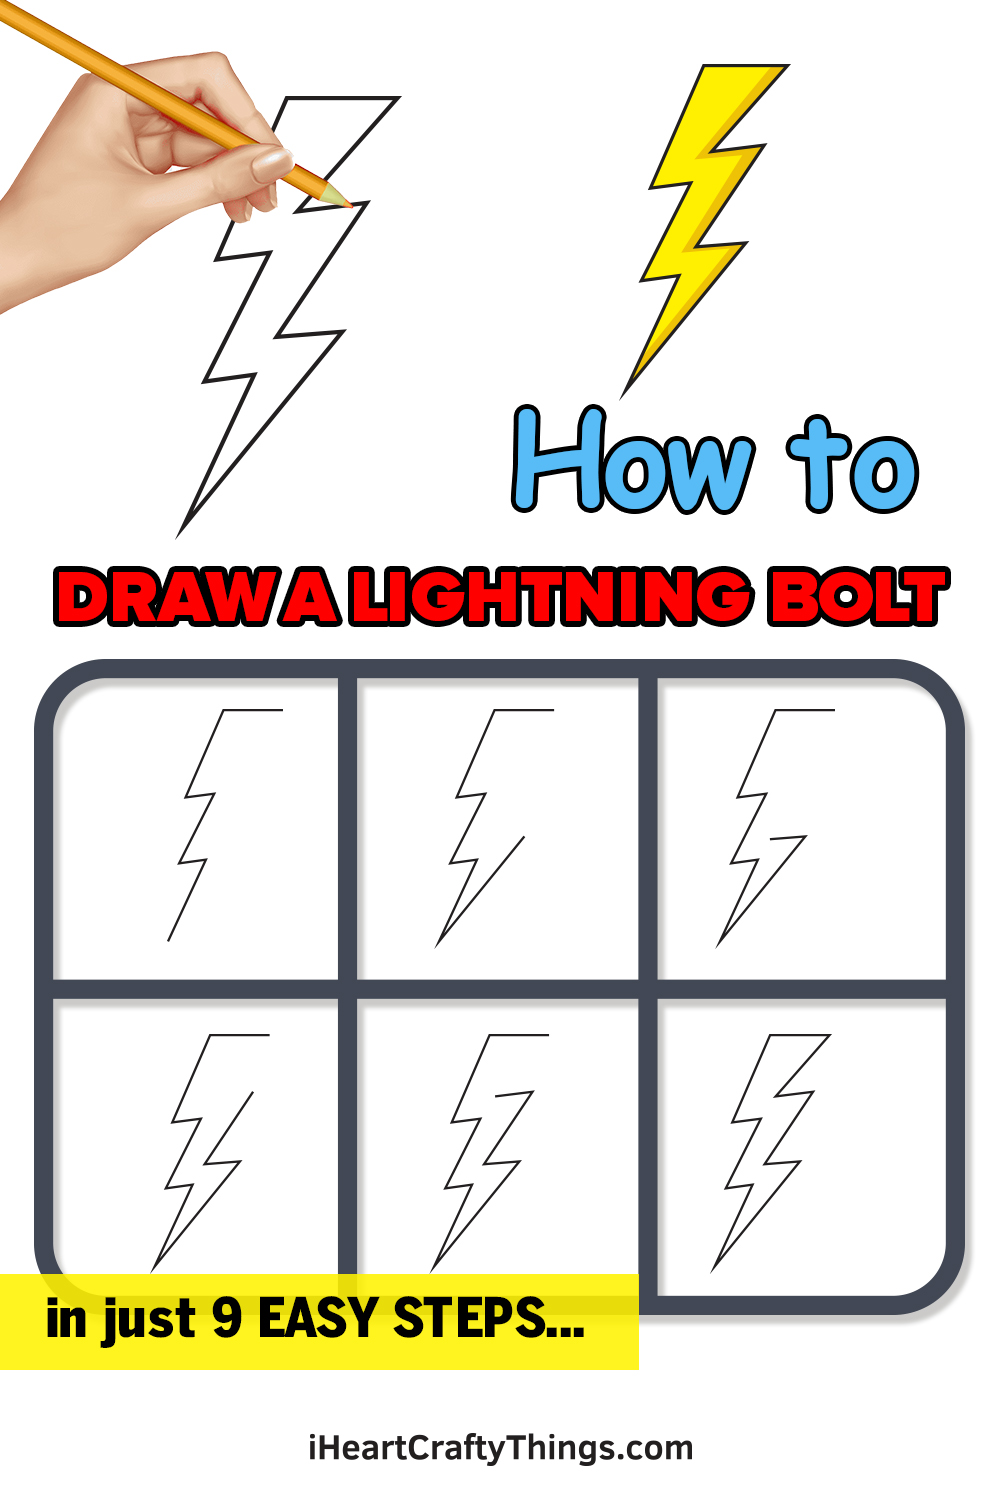 how to draw a lightning bolt in 9 easy steps